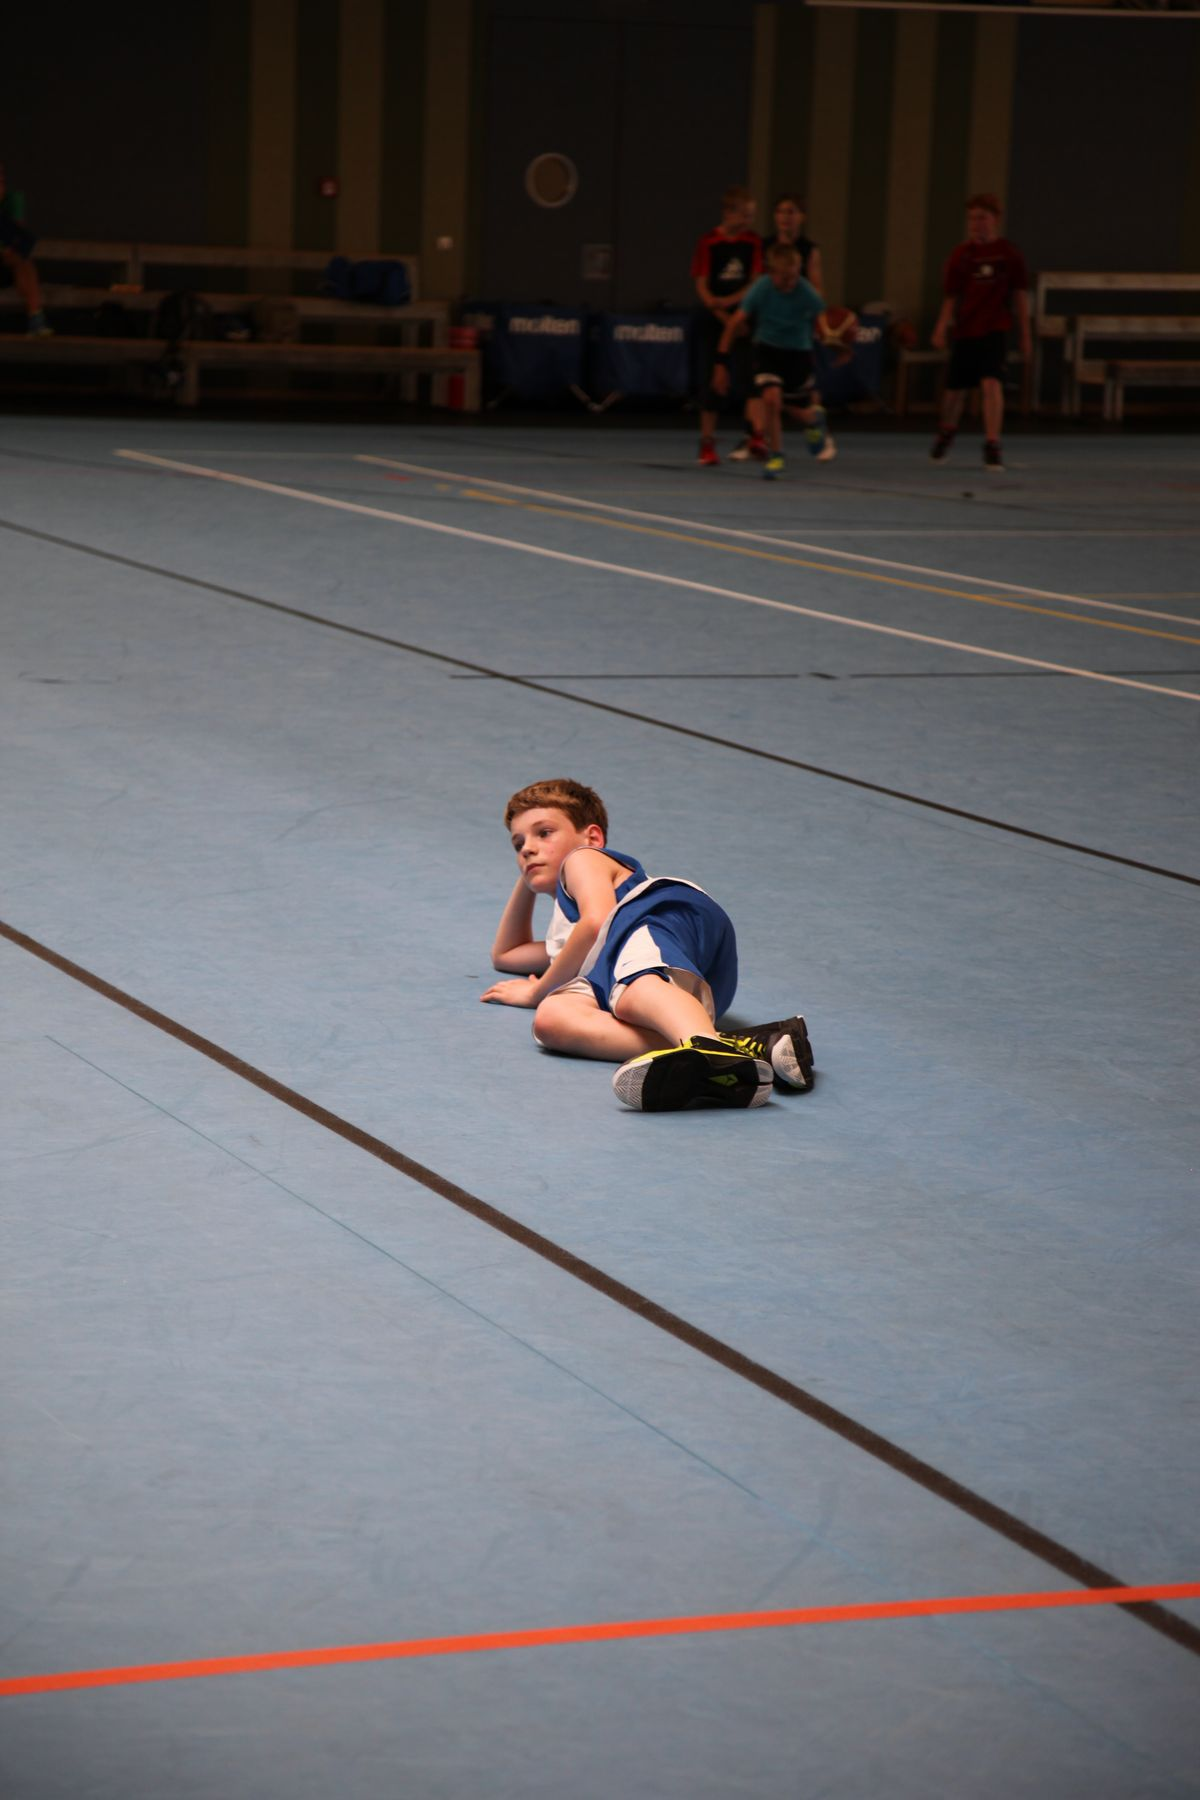 Sommer-Bball-Camp 2014_Tag 1 (12)